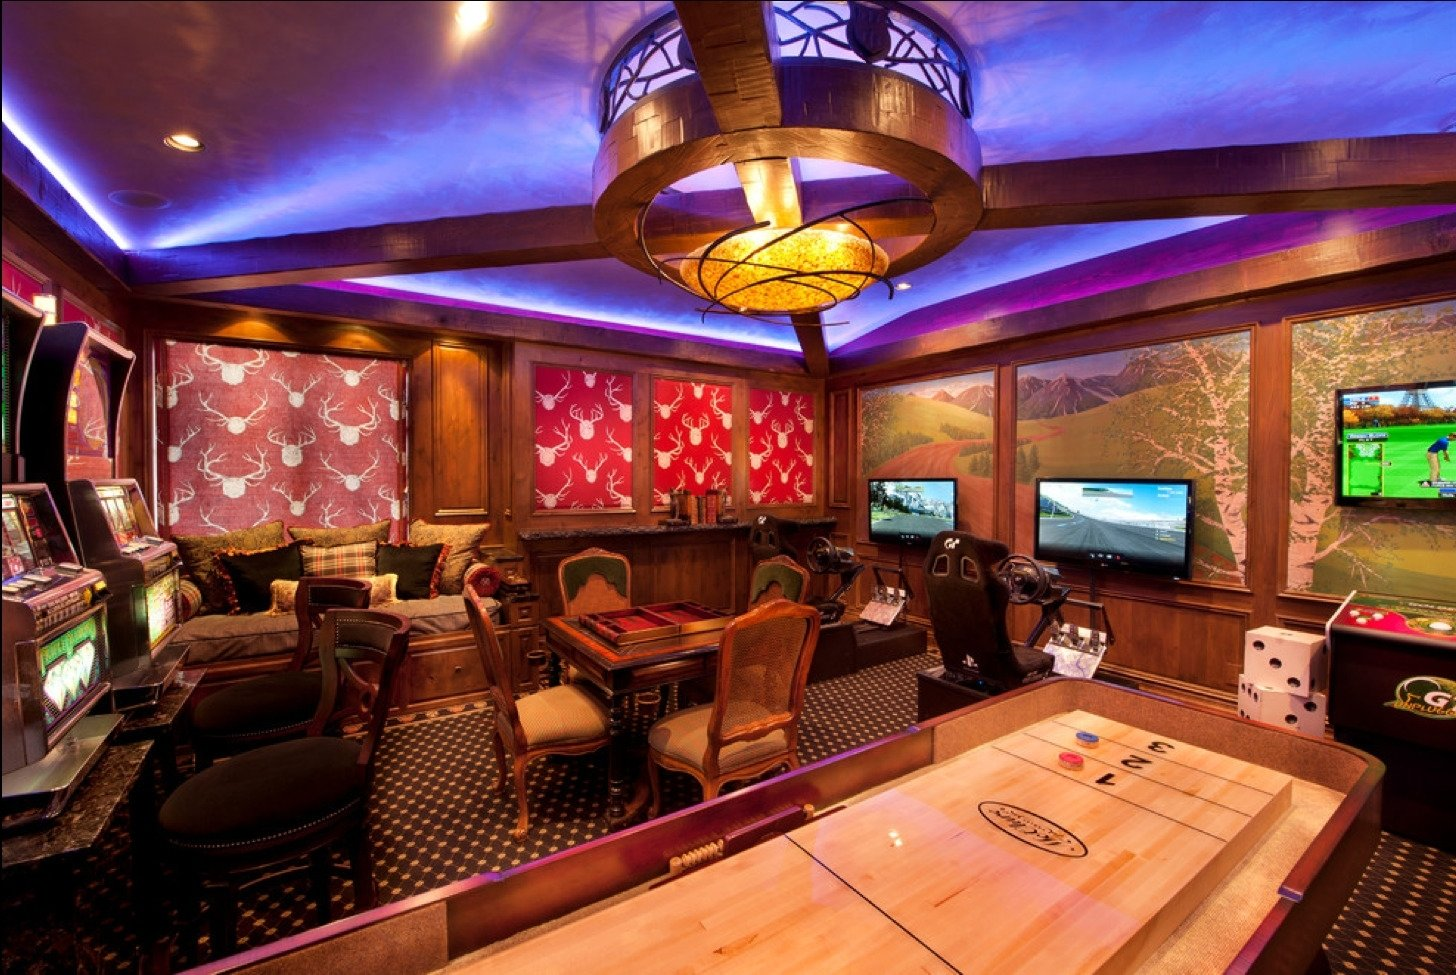 10 Gorgeous Game Room Ideas For Adults gorgeous image basement game room ideas game room ideas video room